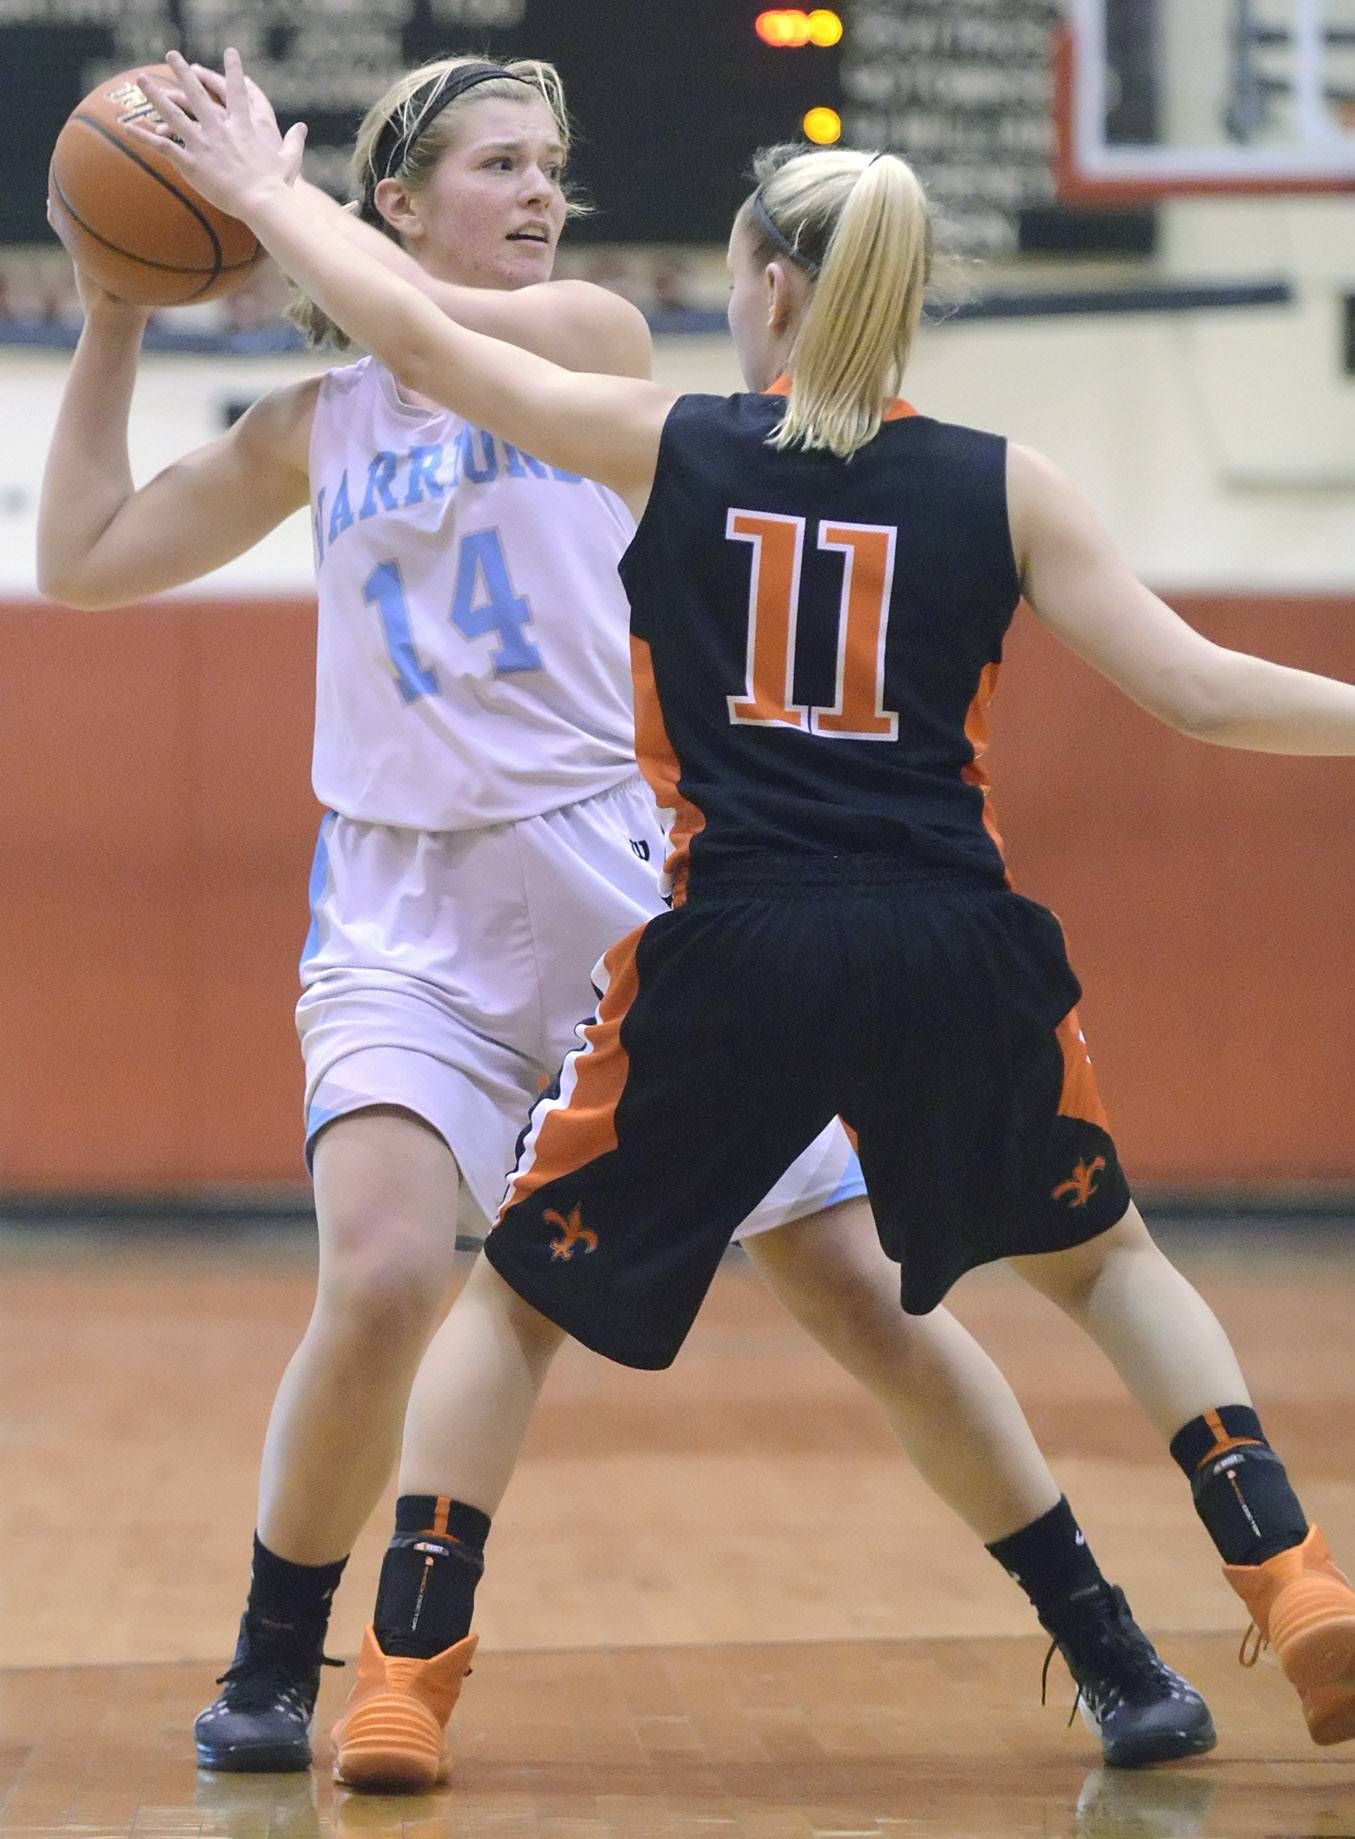 Willowbrook's Lauren Carroll looks to pass around St. Charles East's Katelyn Claussner in the third quarter on Tuesday, February 18.